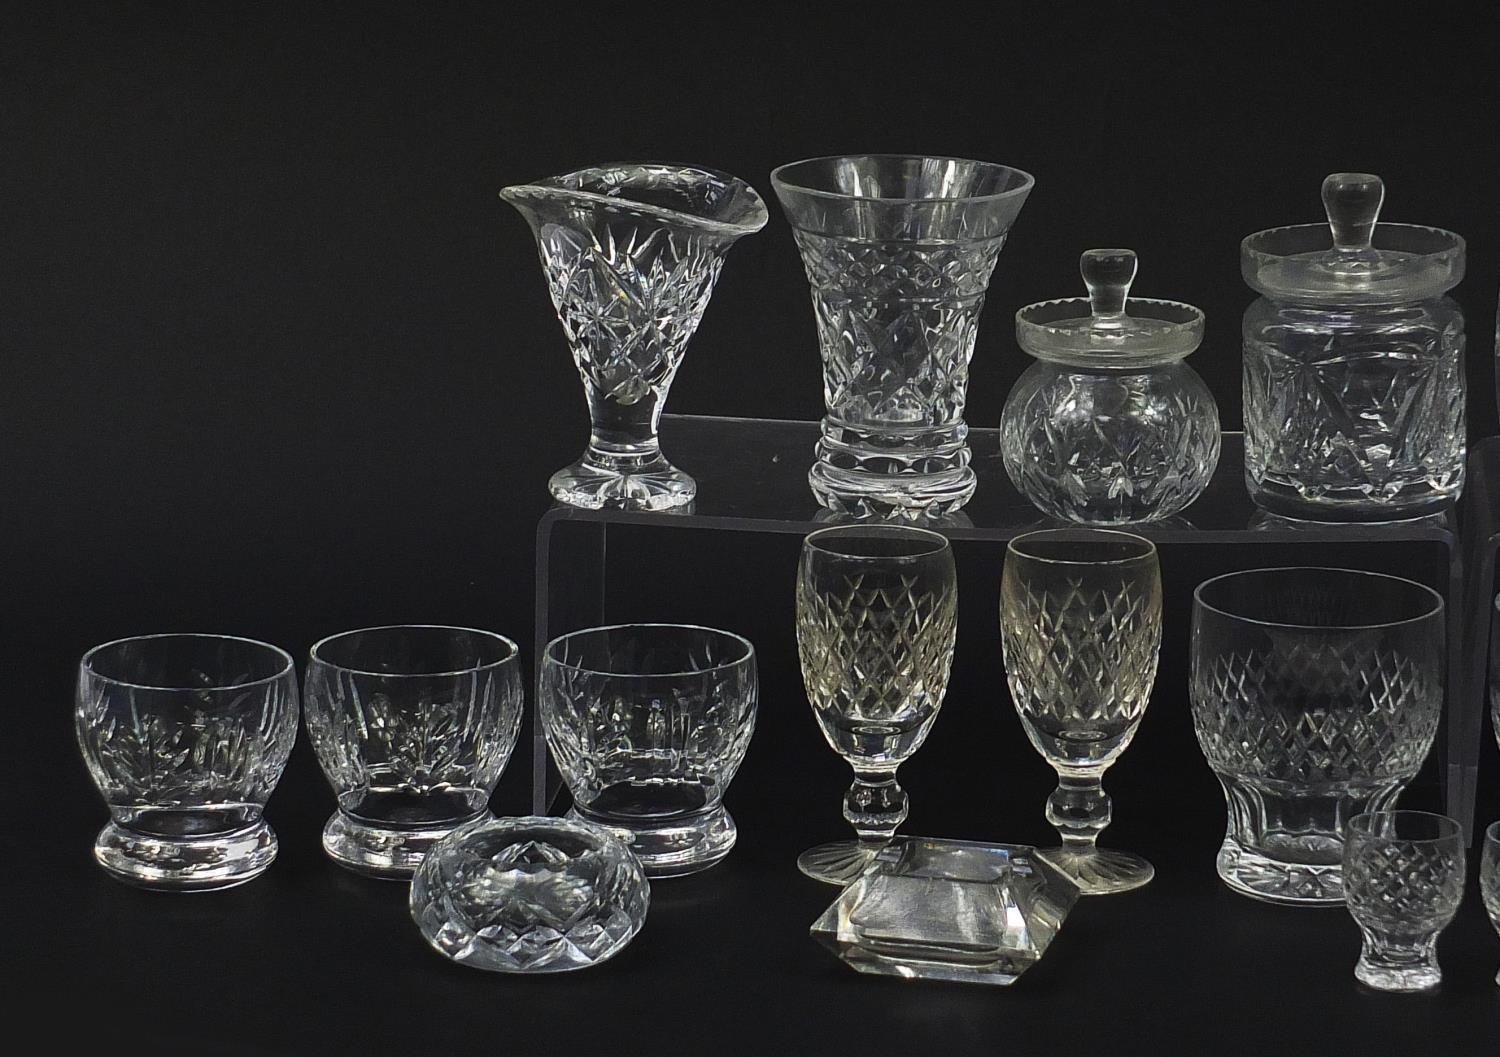 Cut glassware including four Waterford glasses, two jugs and balloon tumblers, the largest 18cm high - Image 2 of 5